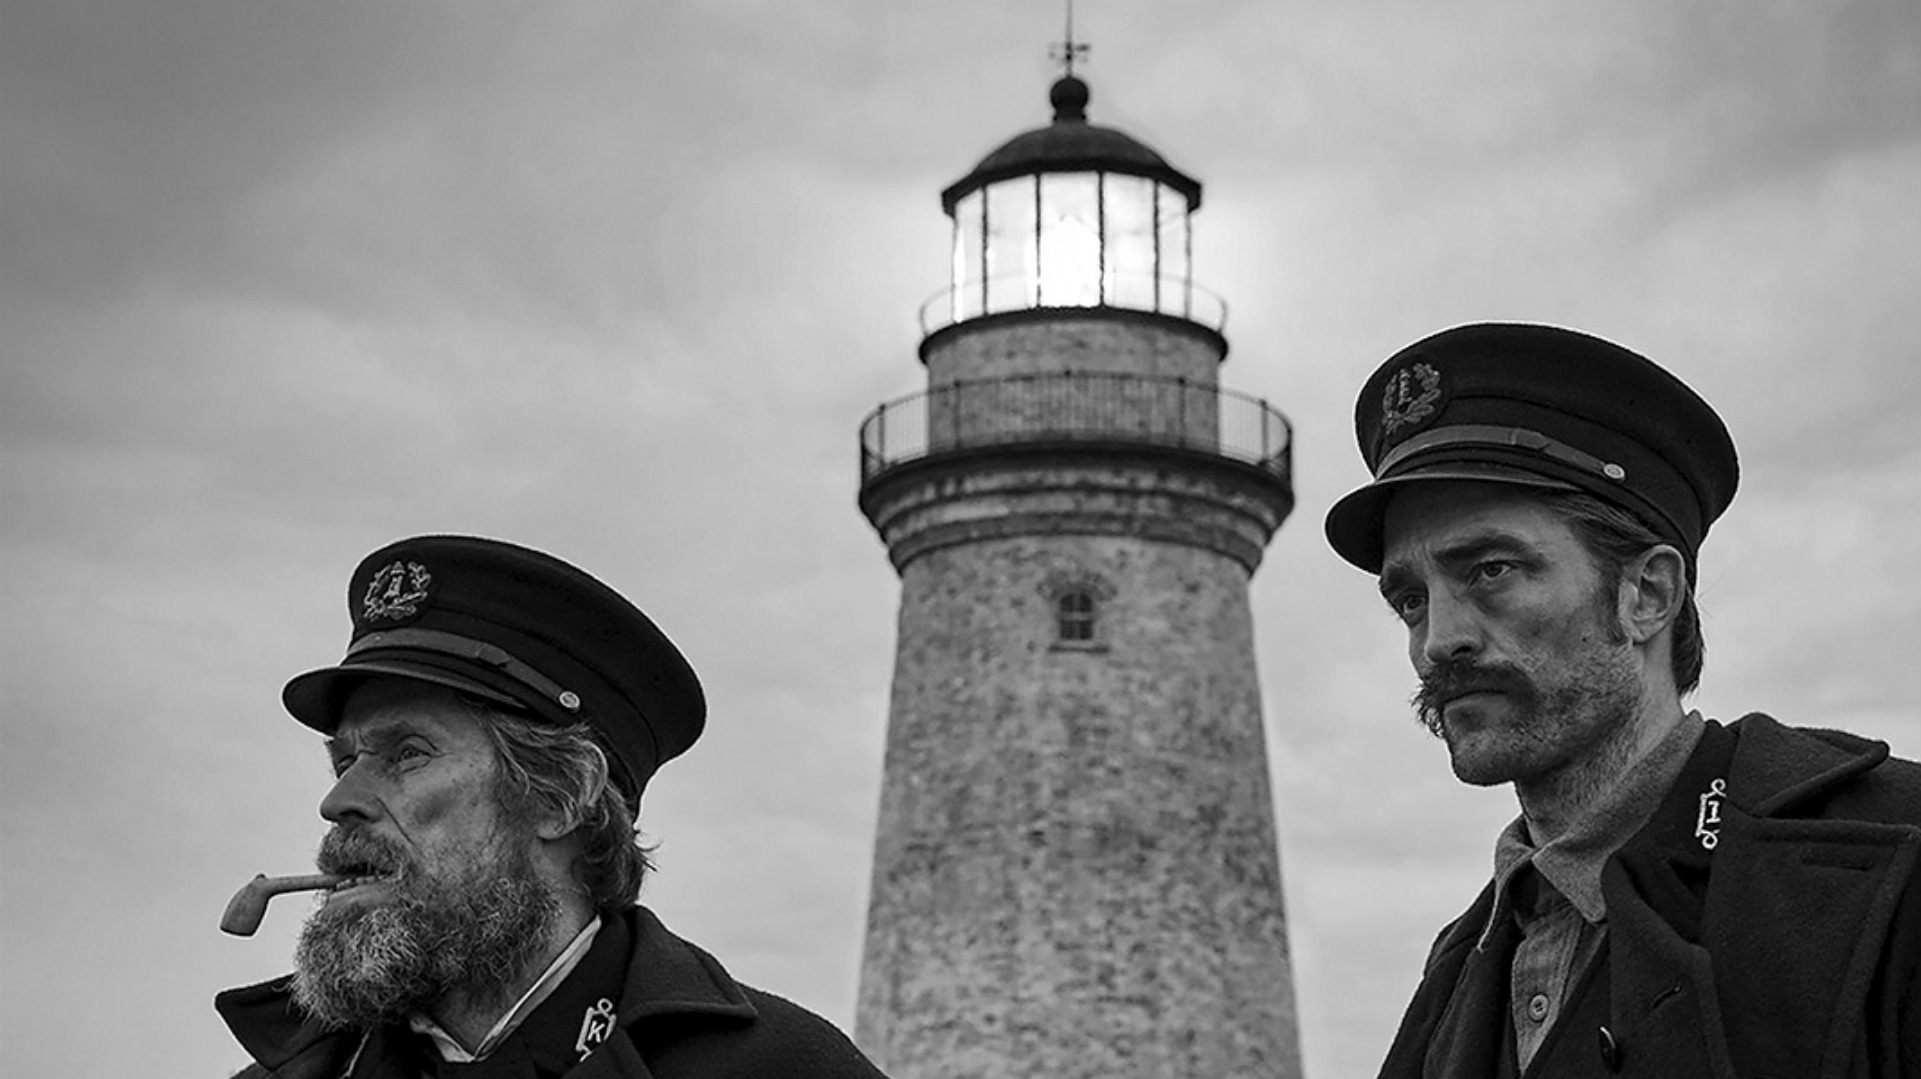 TIFF 2019: The Lighthouse Review